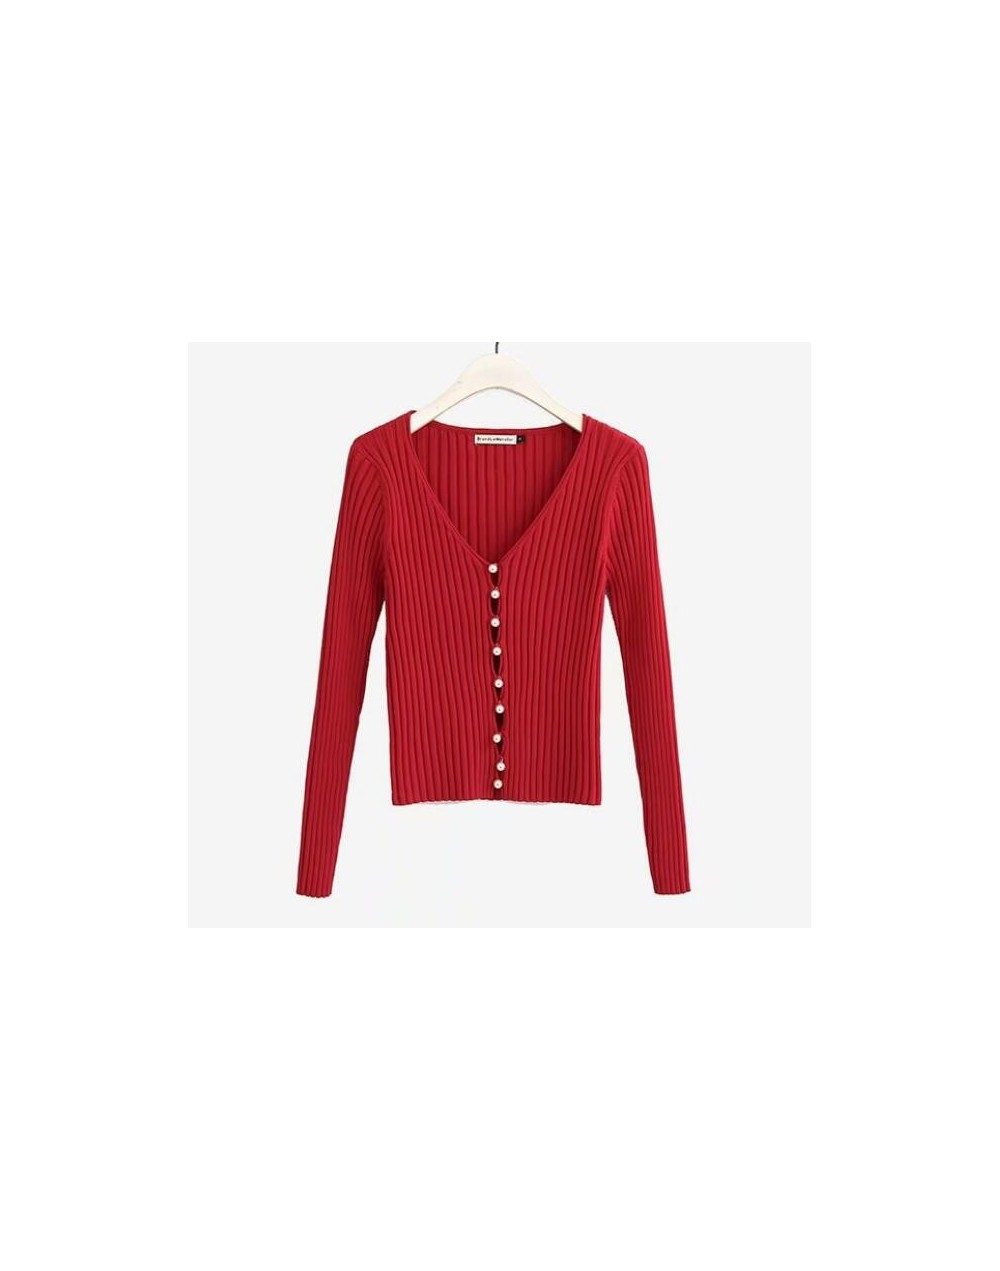 2019 Spring New Stylish Knitting Single Breasted Pearl Cardigan Sweater Woman Deep V-neck Long Sleeve Jumper kleding jerseis...